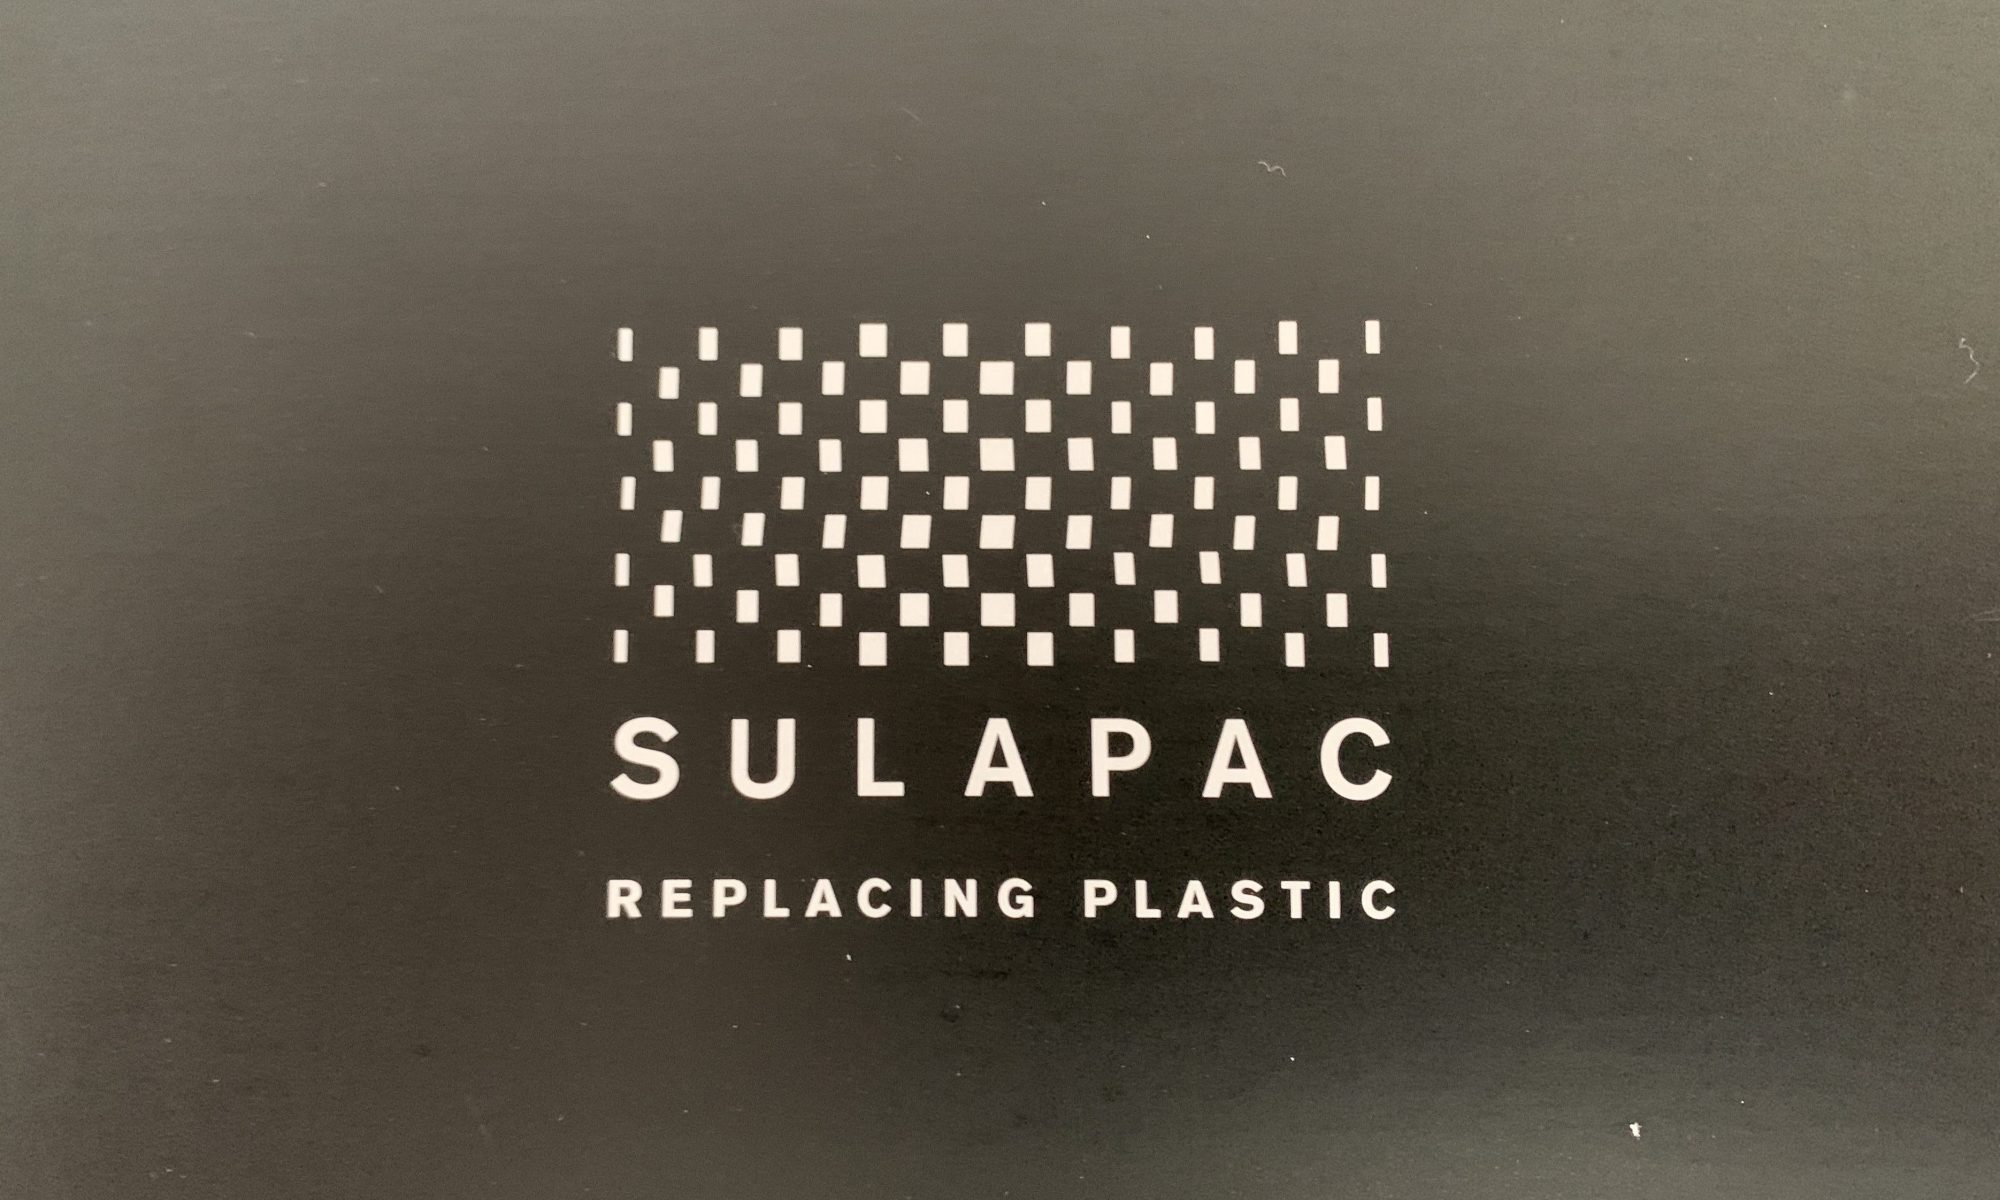 sulapac